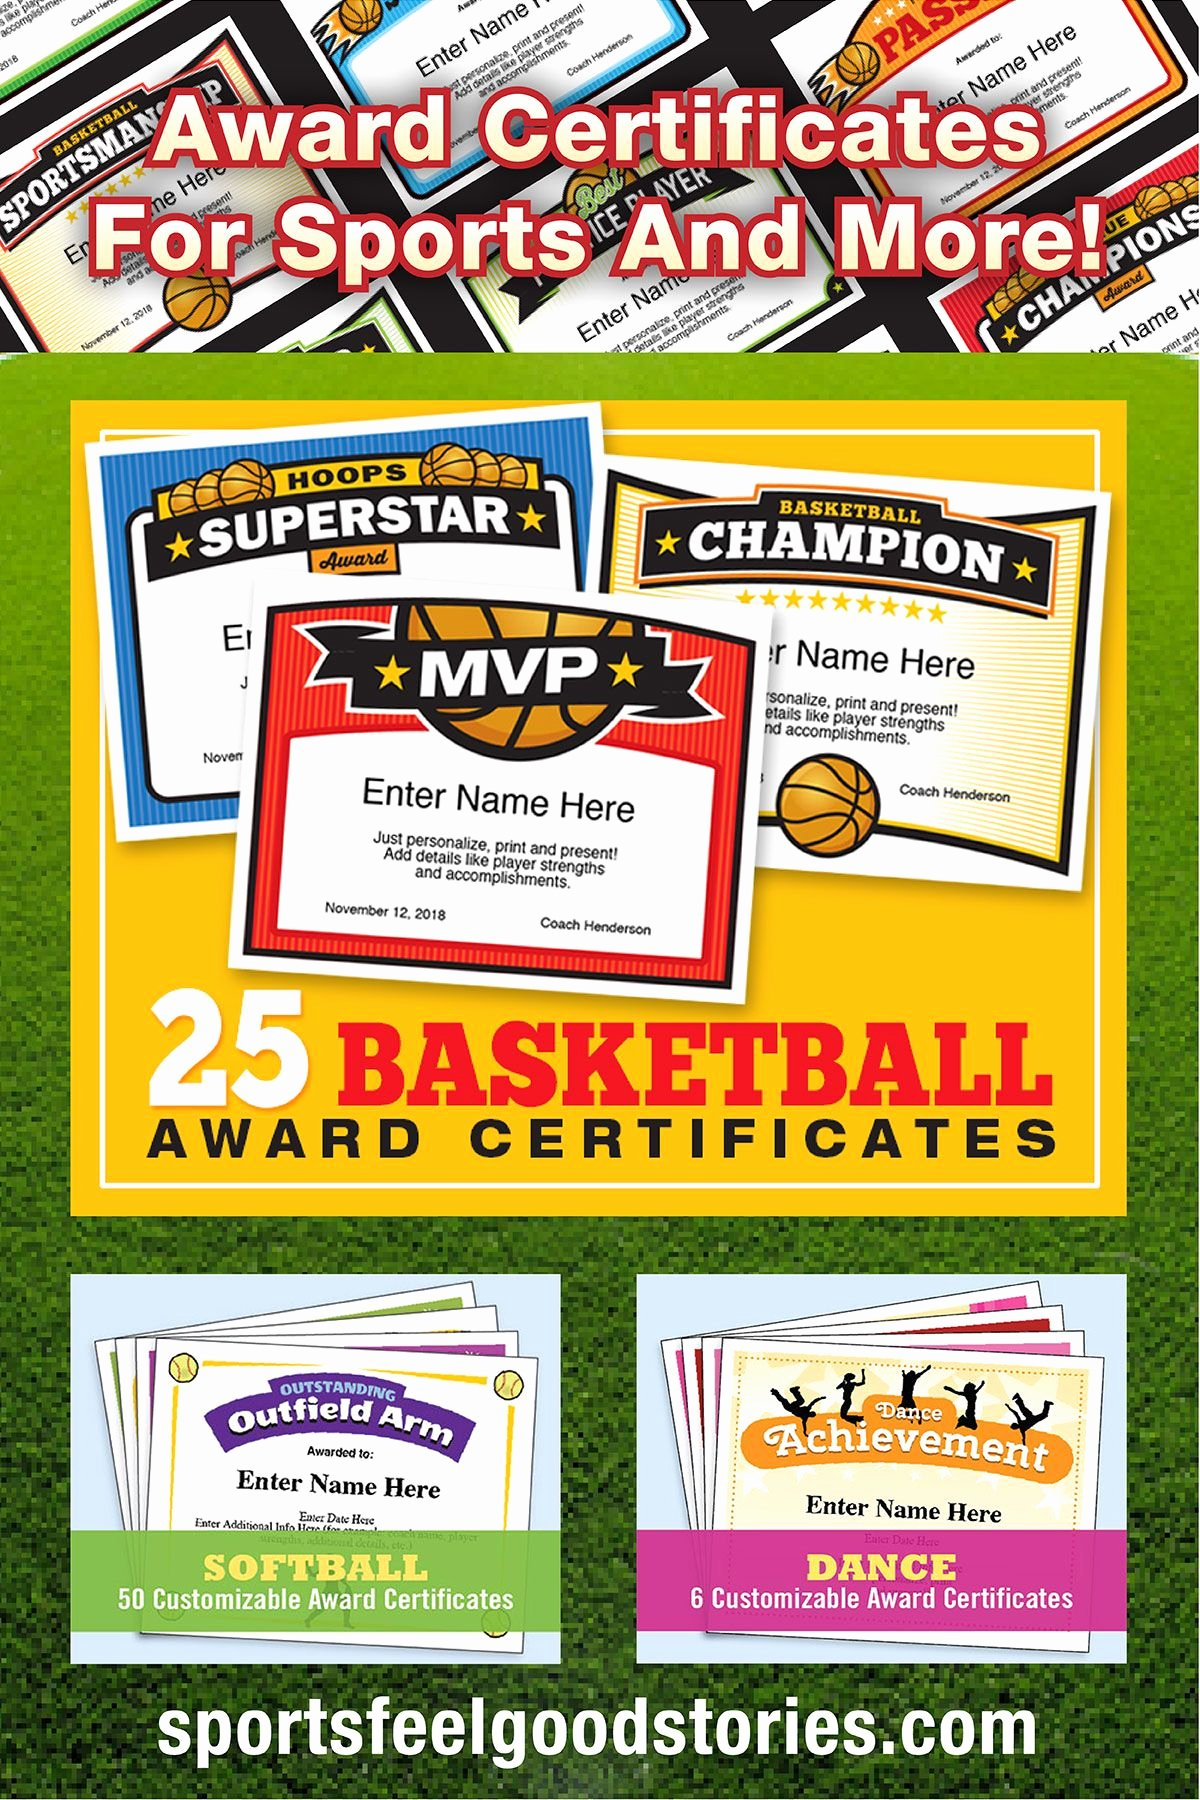 Free Customizable soccer Certificates Unique Inspirational Sports Stories